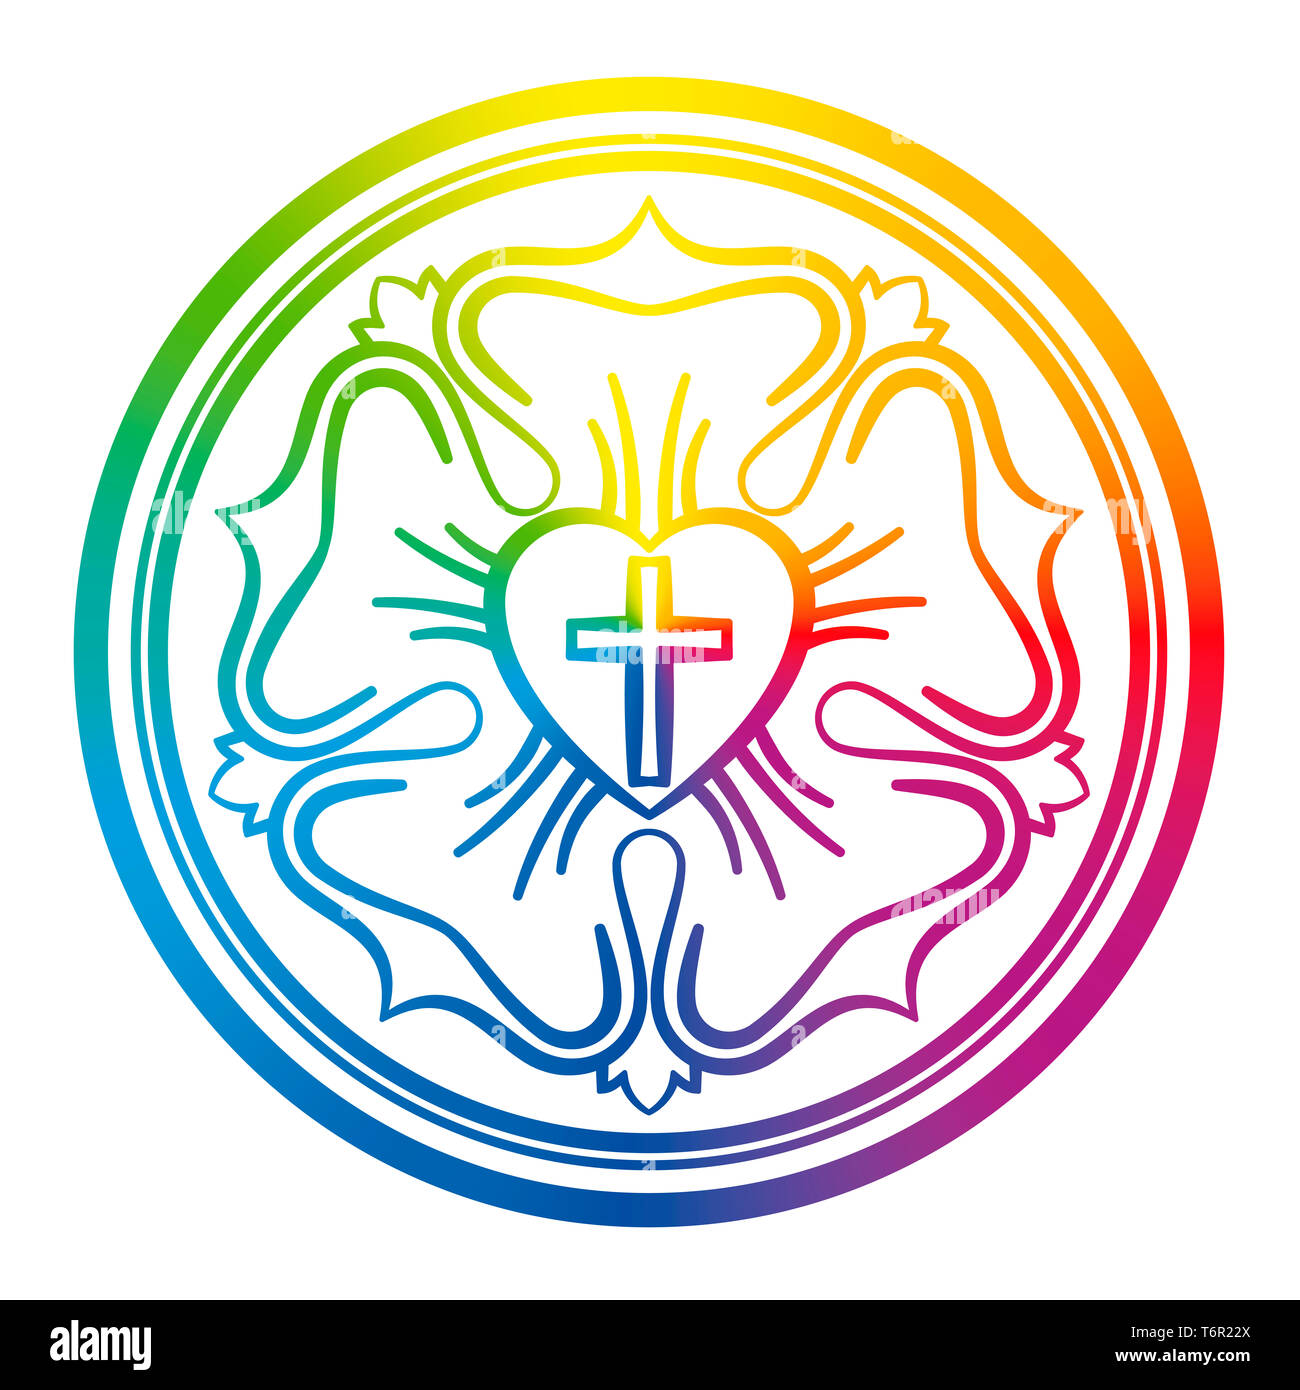 Luther rose symbol. Rainbow colored sign of Lutheranism and protestants, consisting of a cross, a heart, a single rose and a ring. - Stock Image